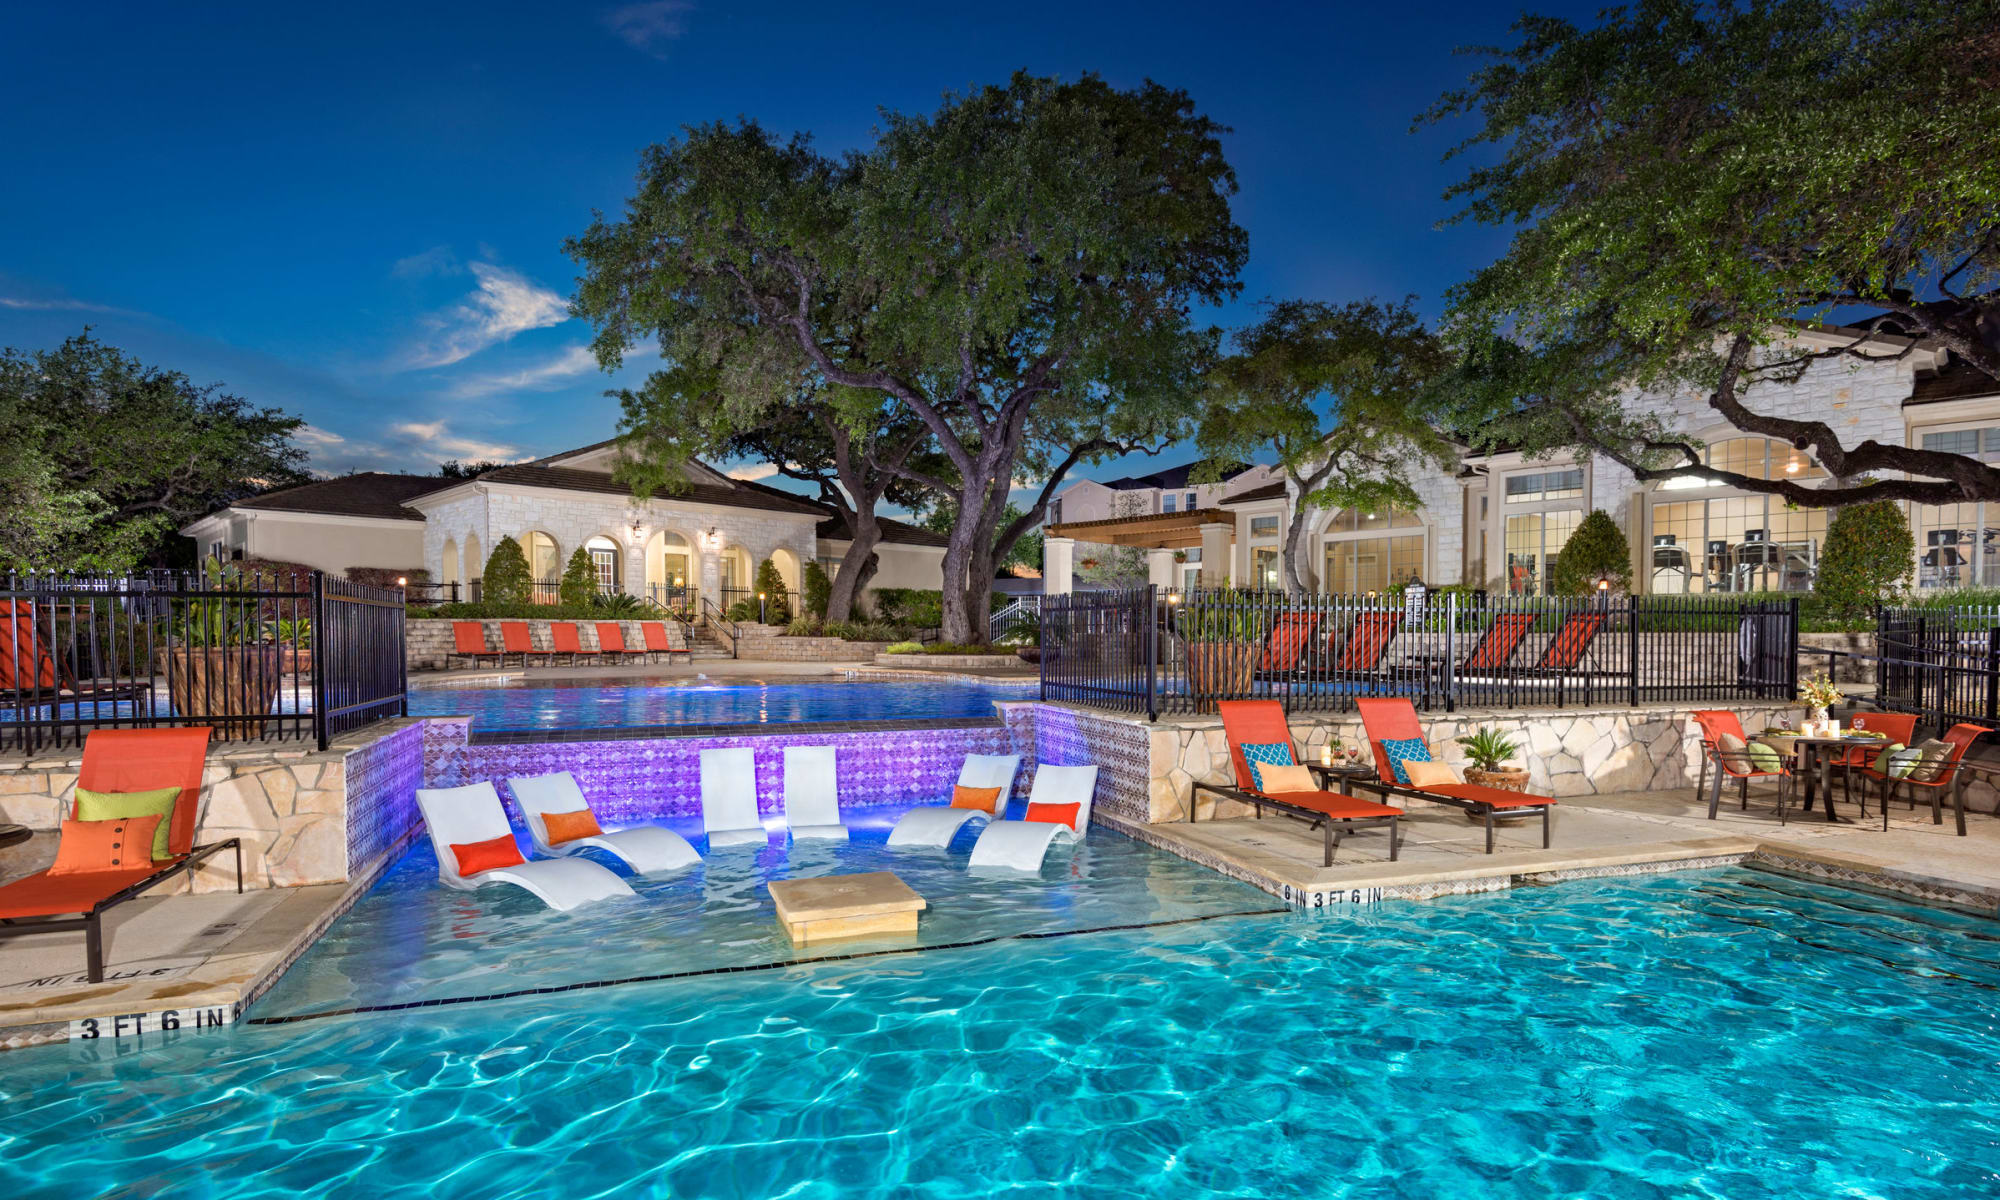 Apartments at Villas of Vista Del Norte in San Antonio, Texas